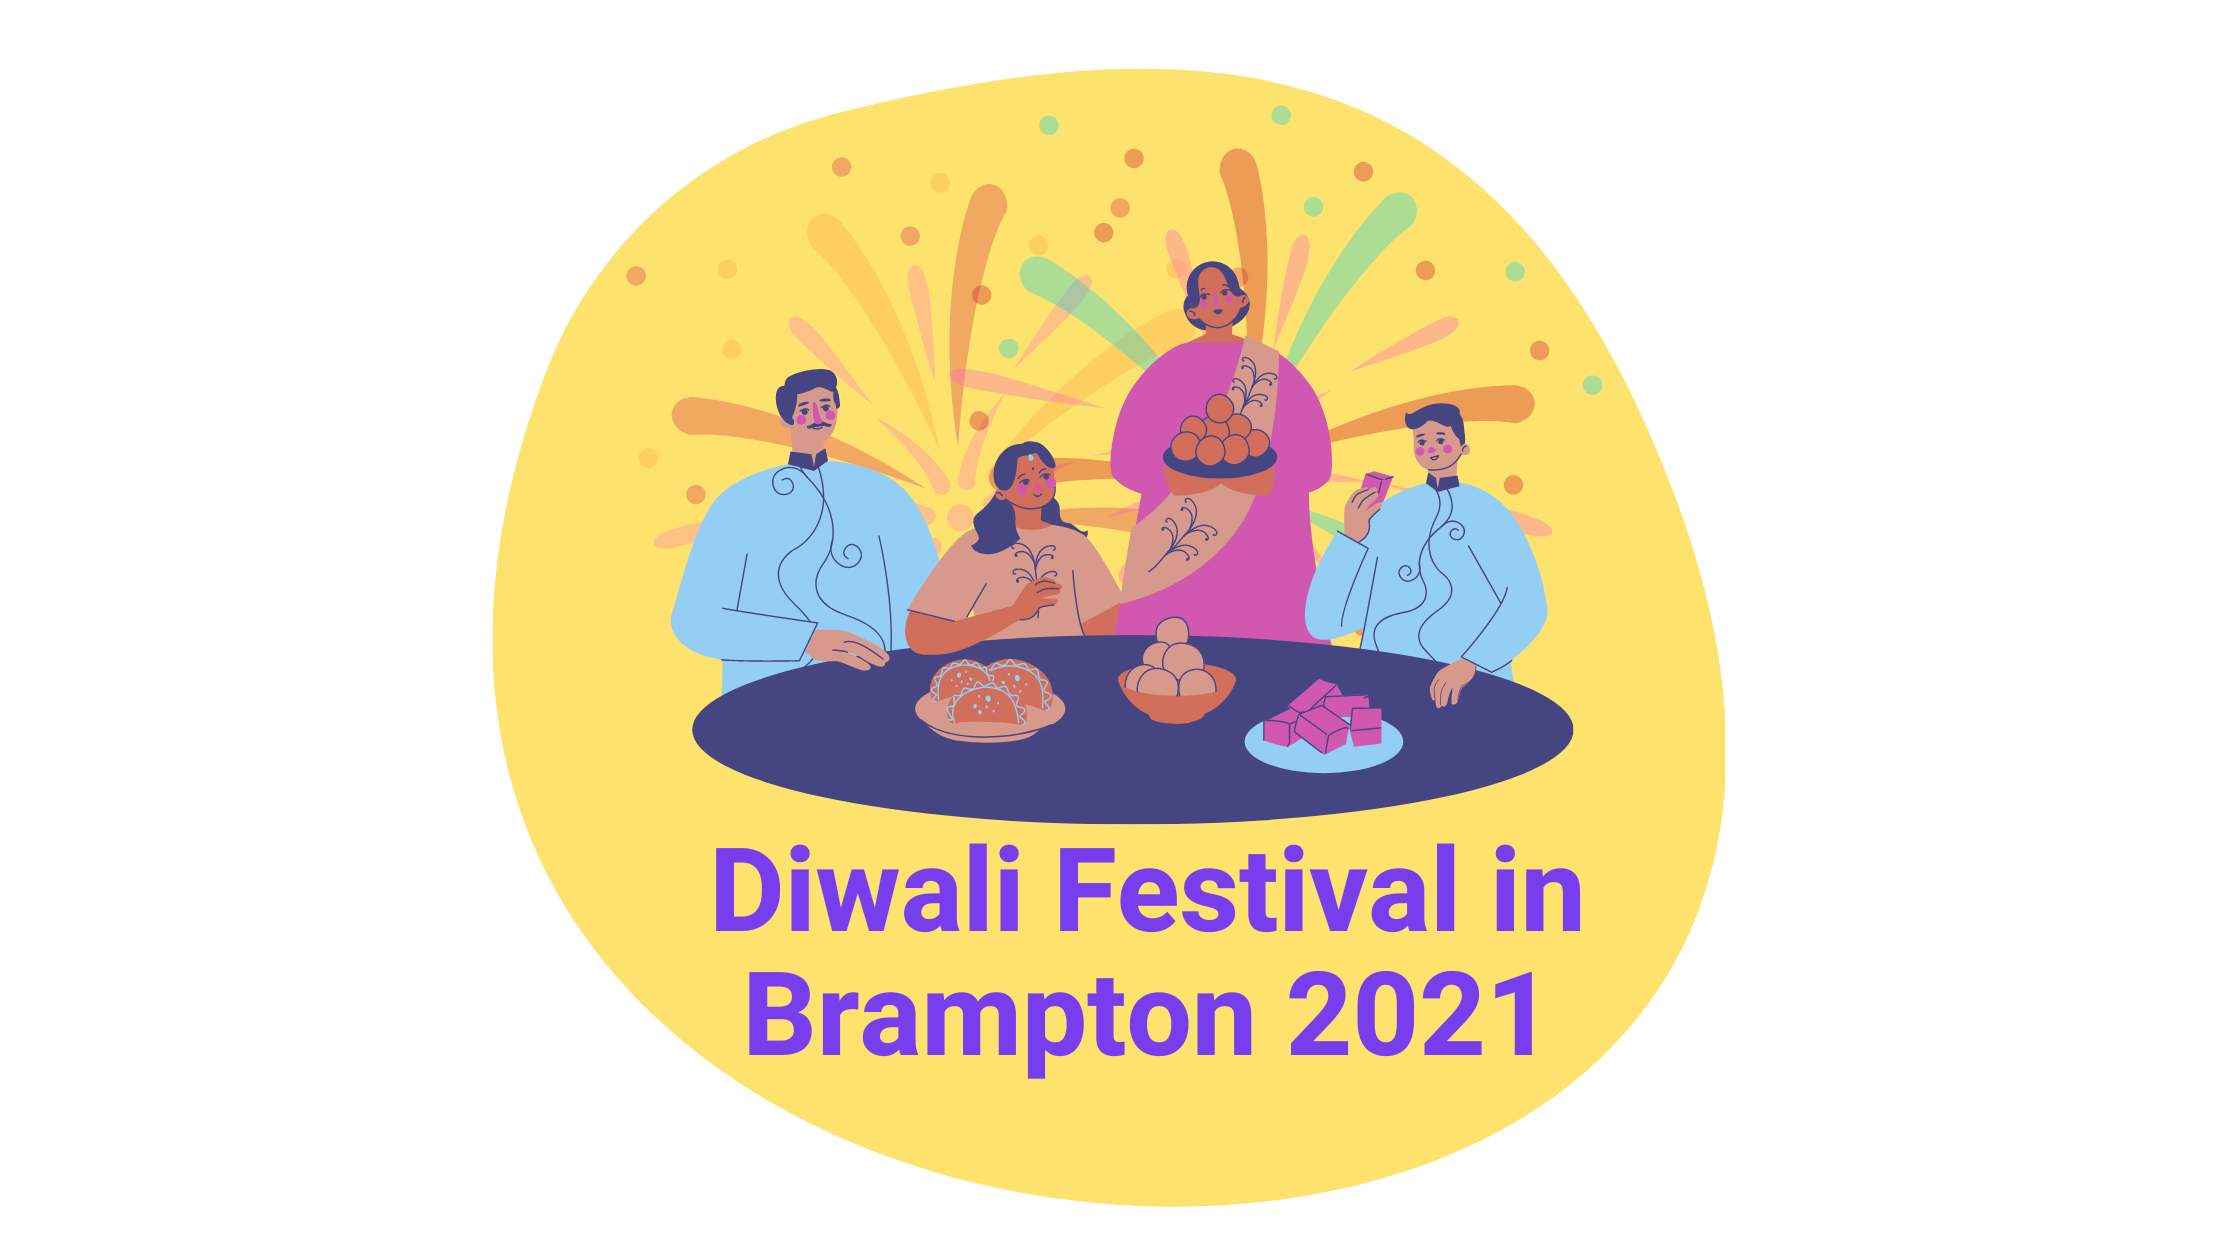 Everything you need to know about Diwali 2021 in Brampton